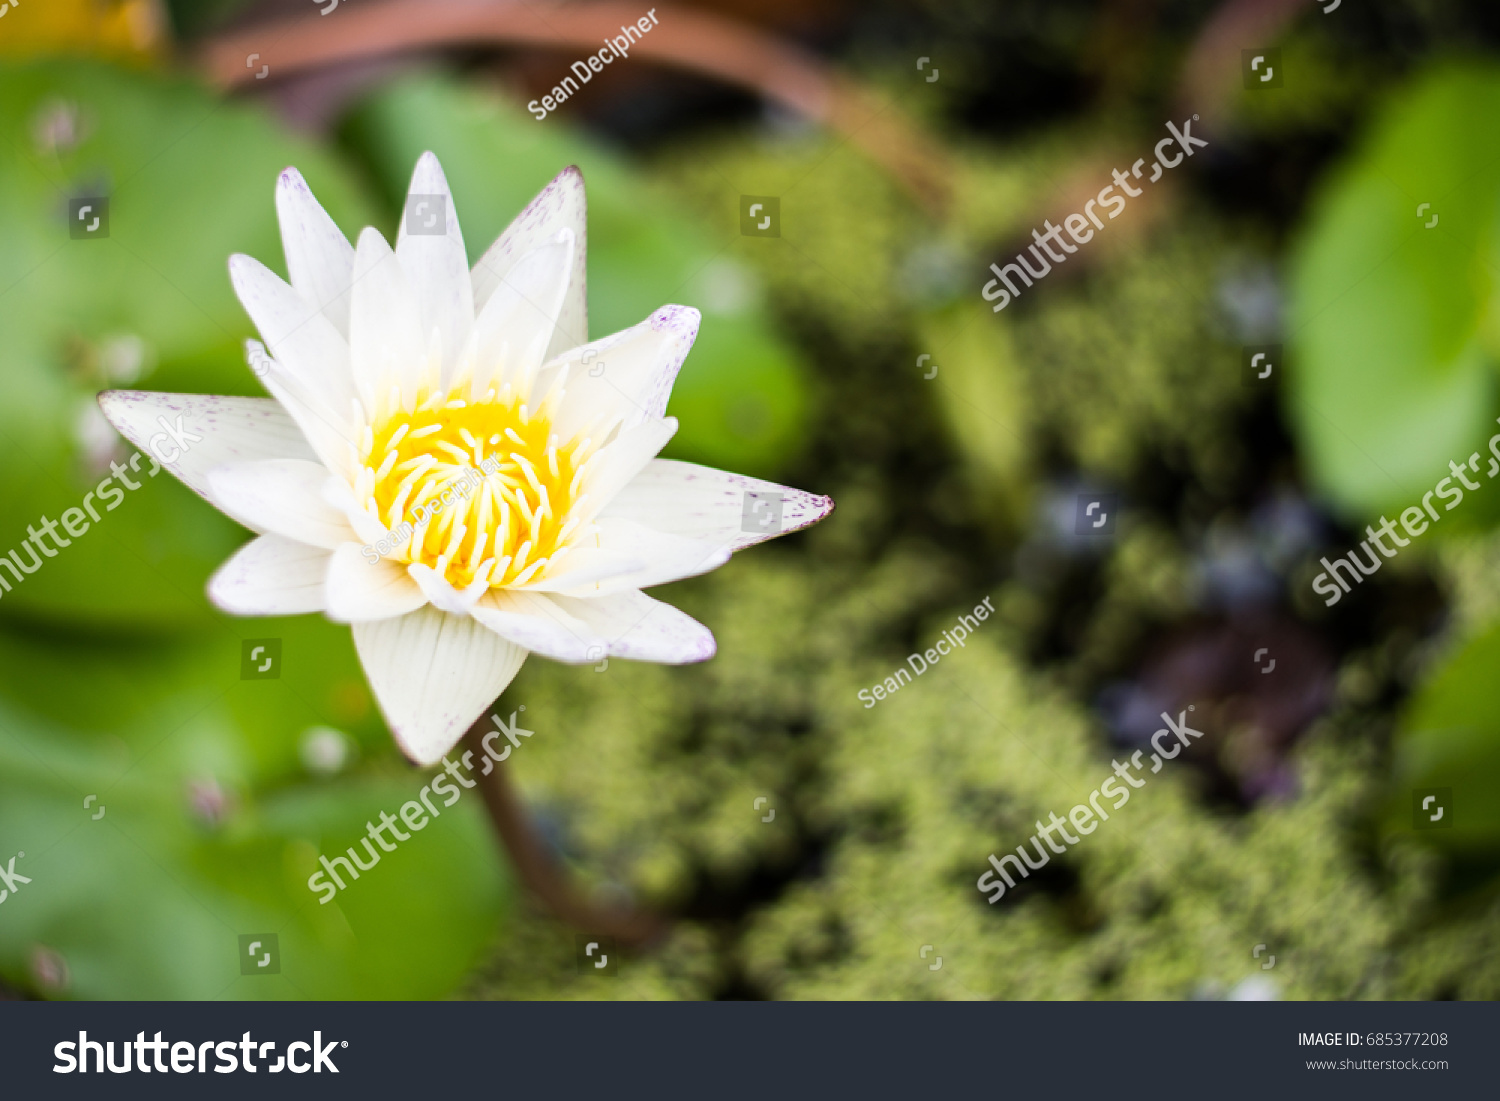 Meaning of white lotus flower gallery flower wallpaper hd colorful white lotus flower meaning crest wedding and flowers colorful meaning of white lotus flower inspiration izmirmasajfo